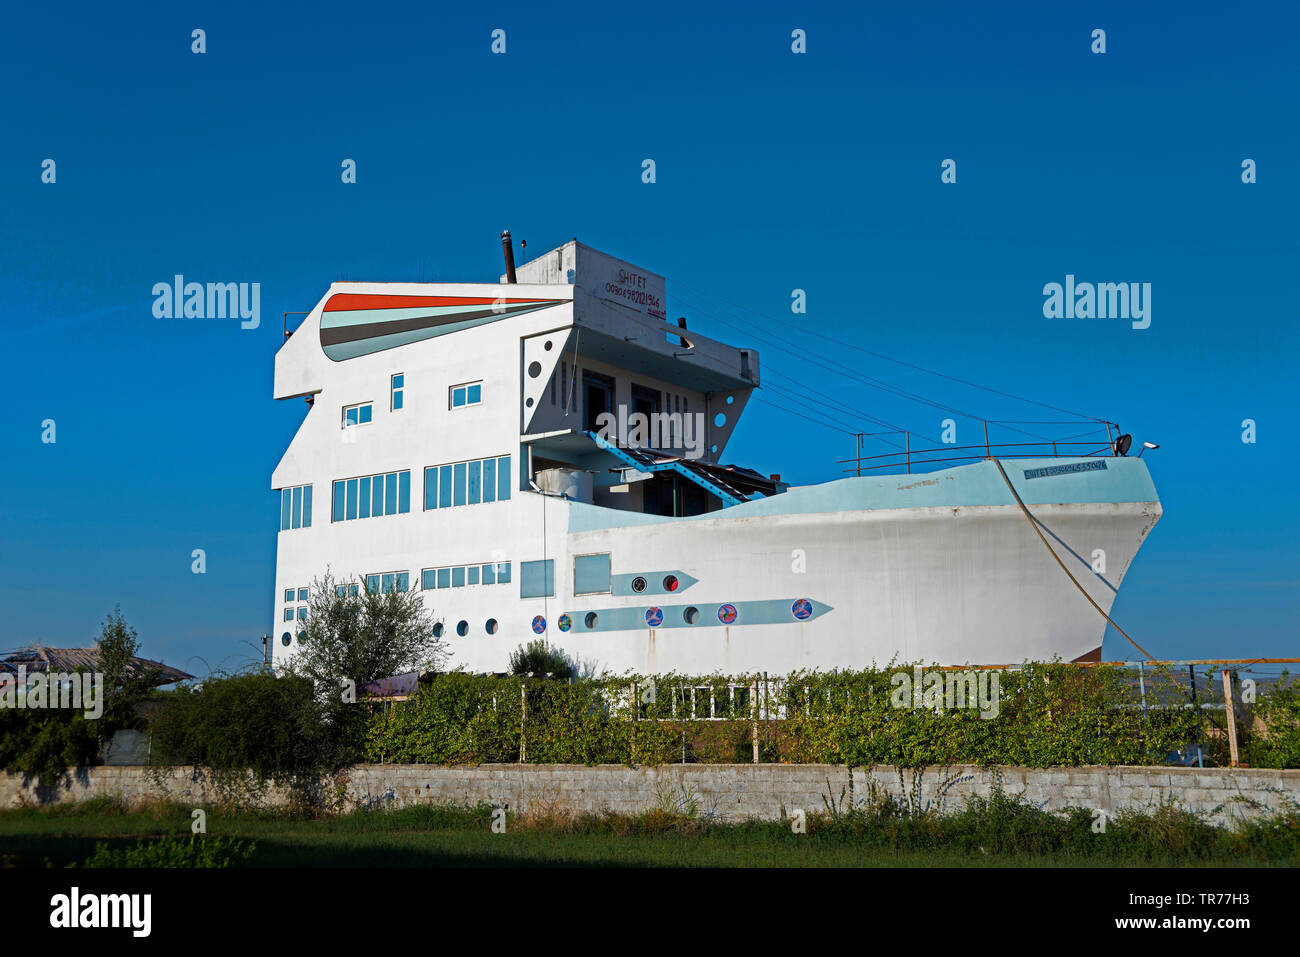 boat-shaped hotel, Albania, Fier, Strum - Stock Image